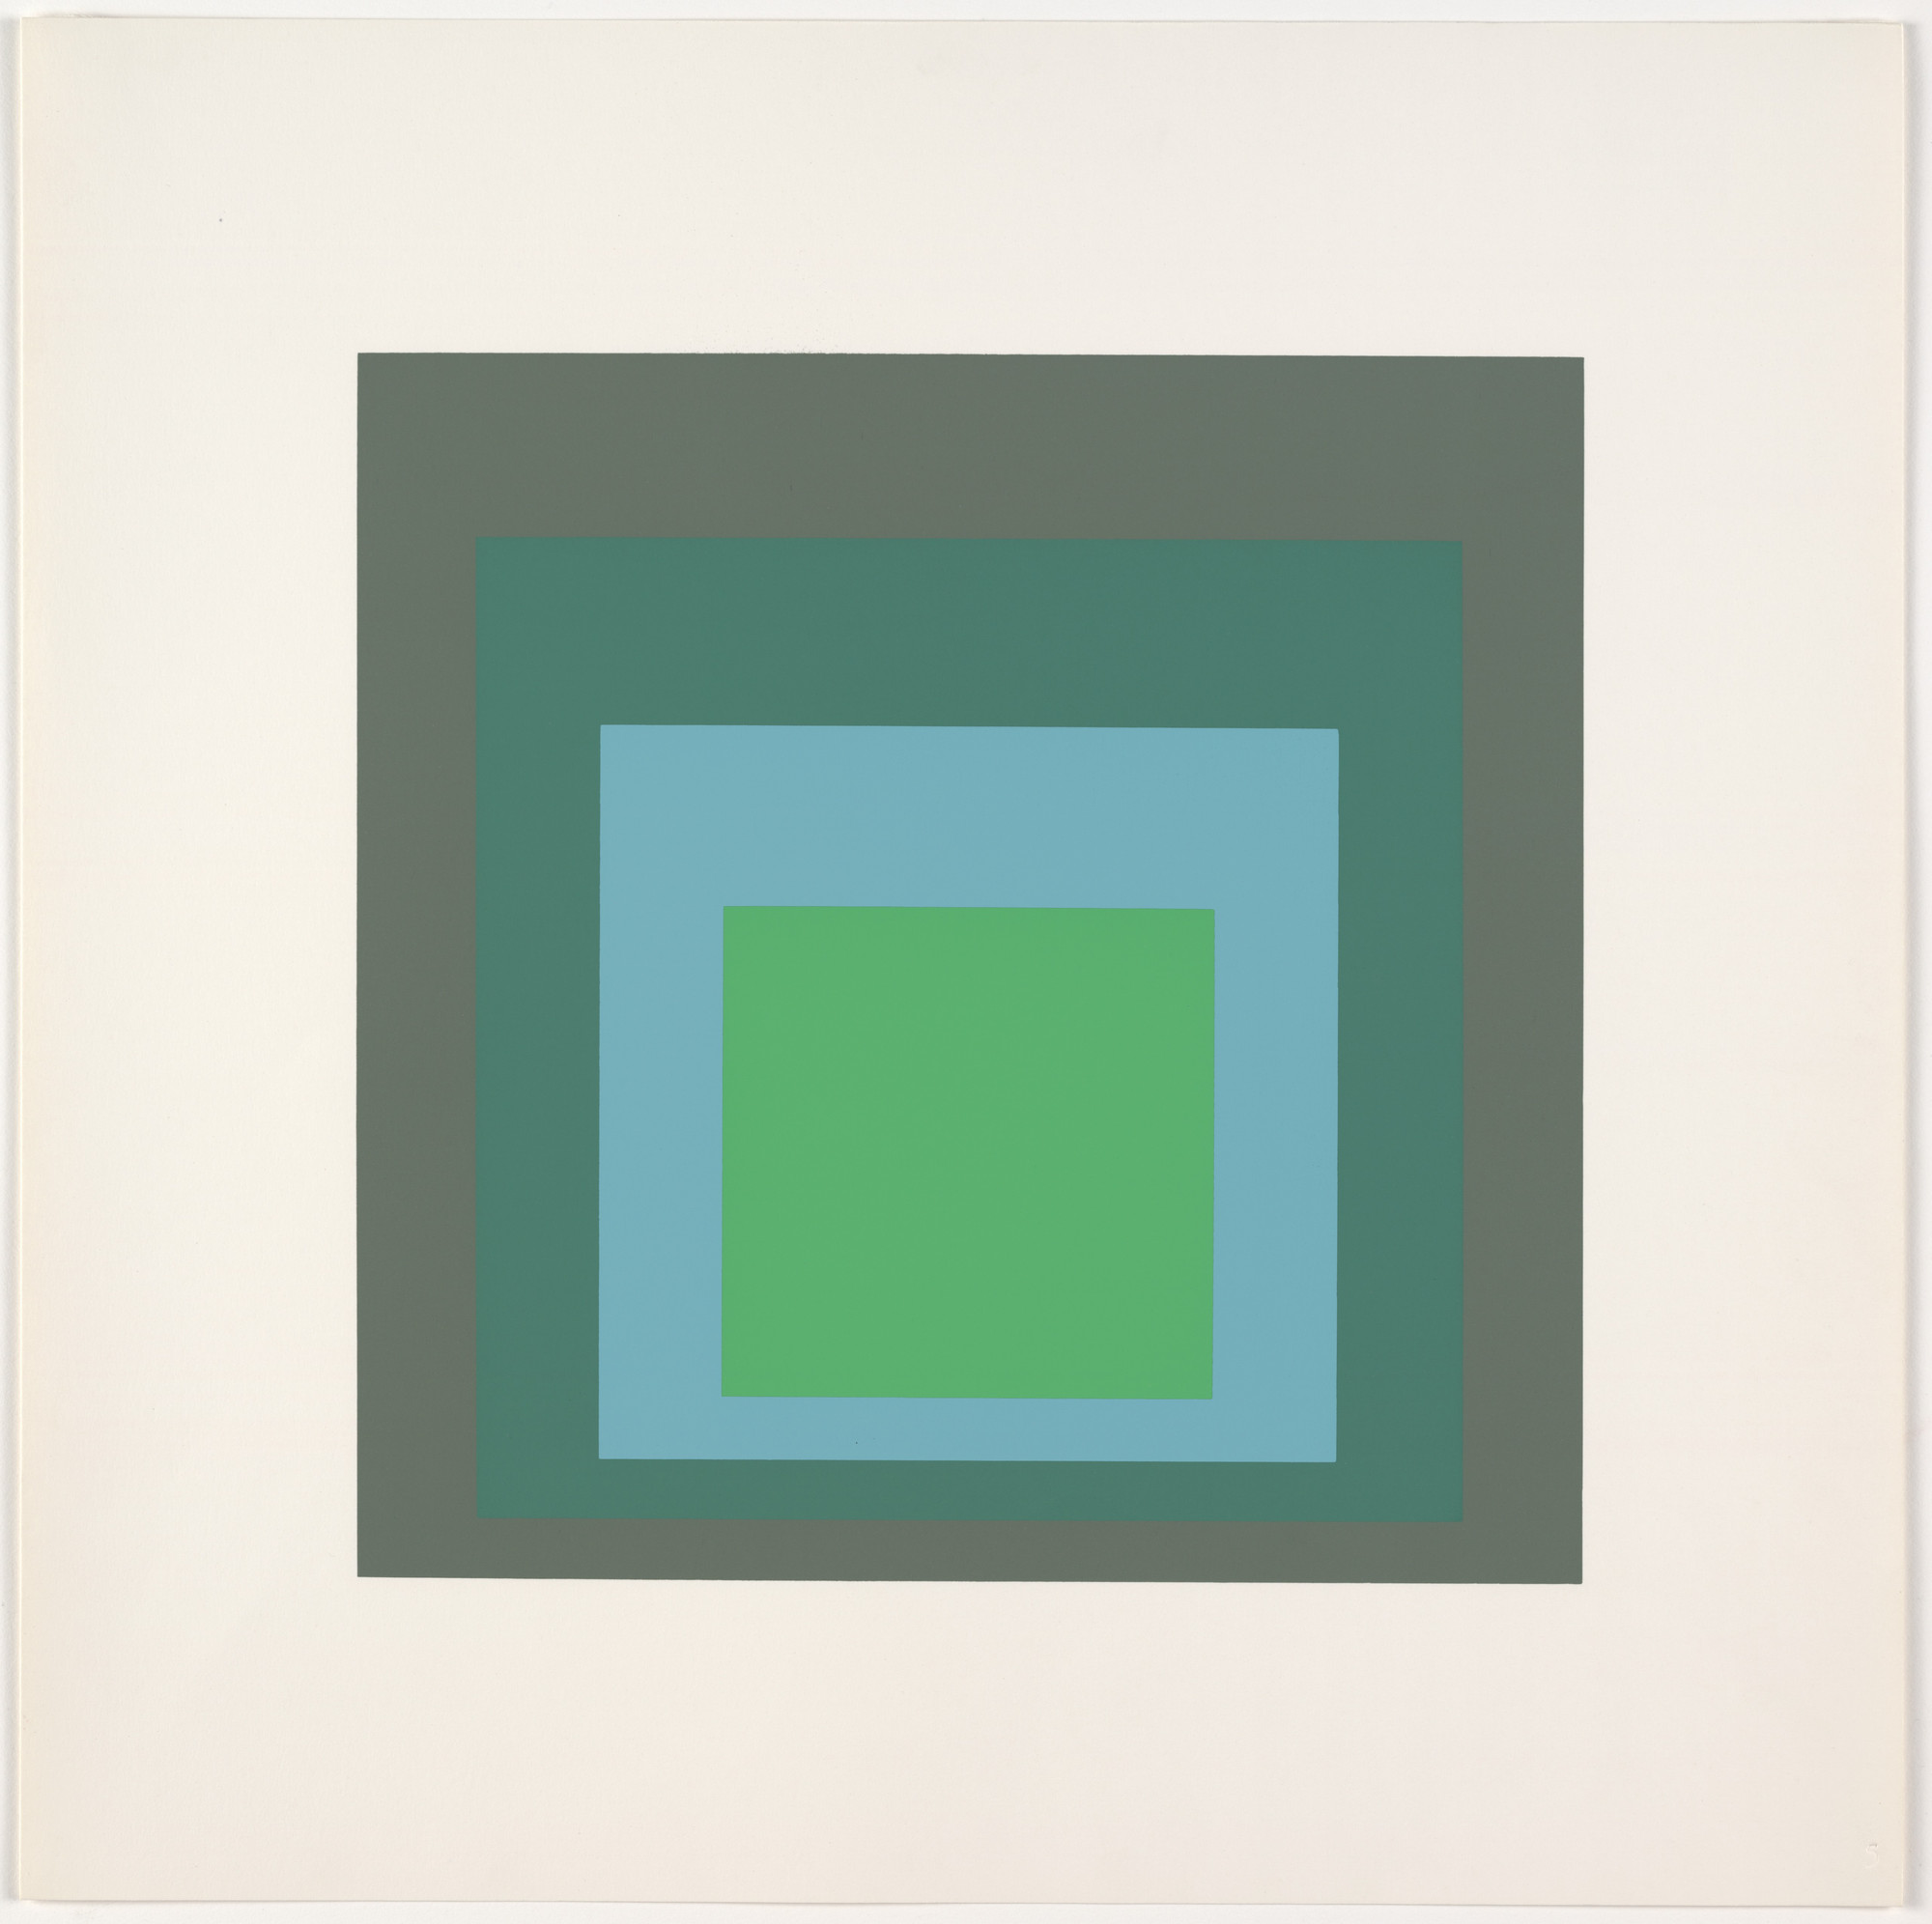 Josef Albers. Patina from Homage to the Square: Ten Works by Josef Albers. 1962